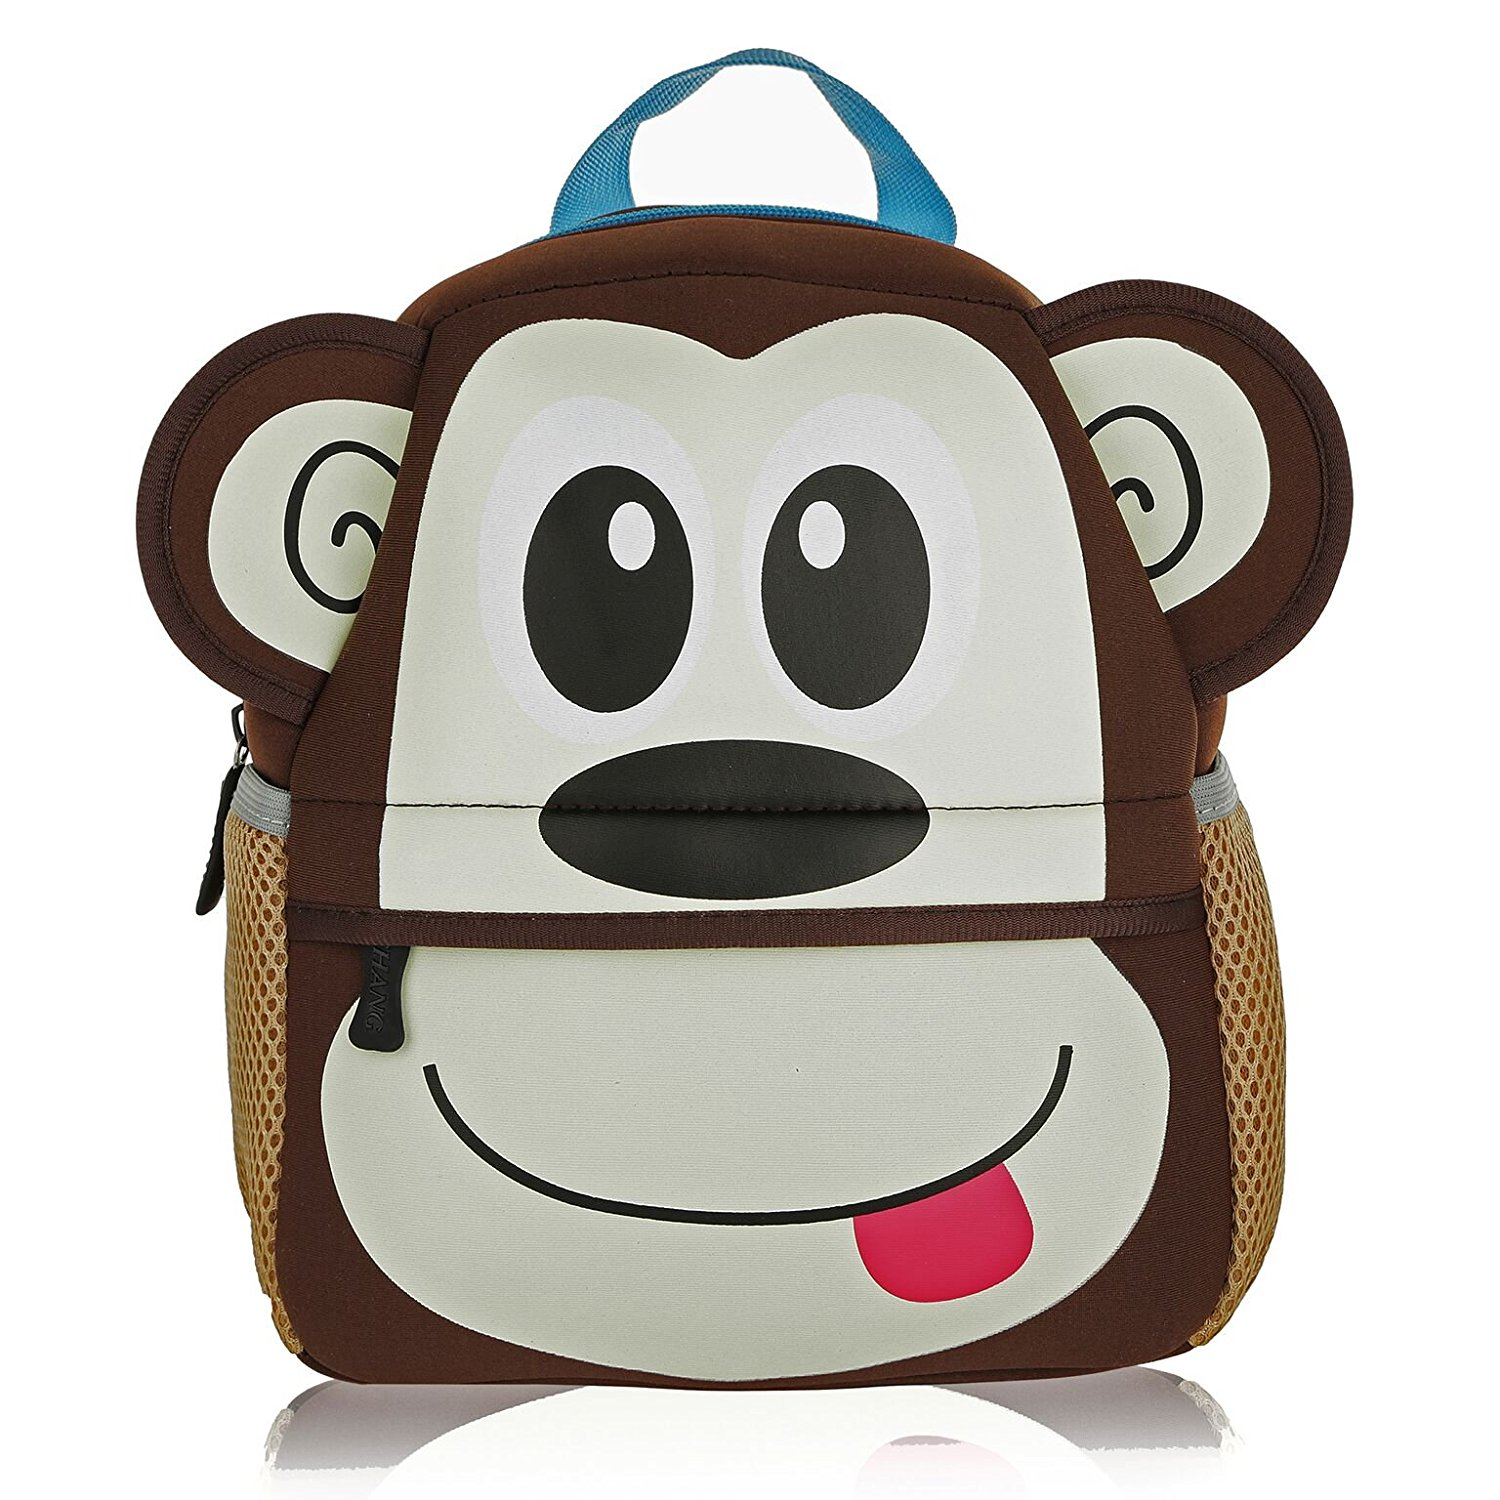 4cceba254178 Toddler Backpack for Kids   Little Kid Lunch Bag   Cute Backpack for  Toddlers - By